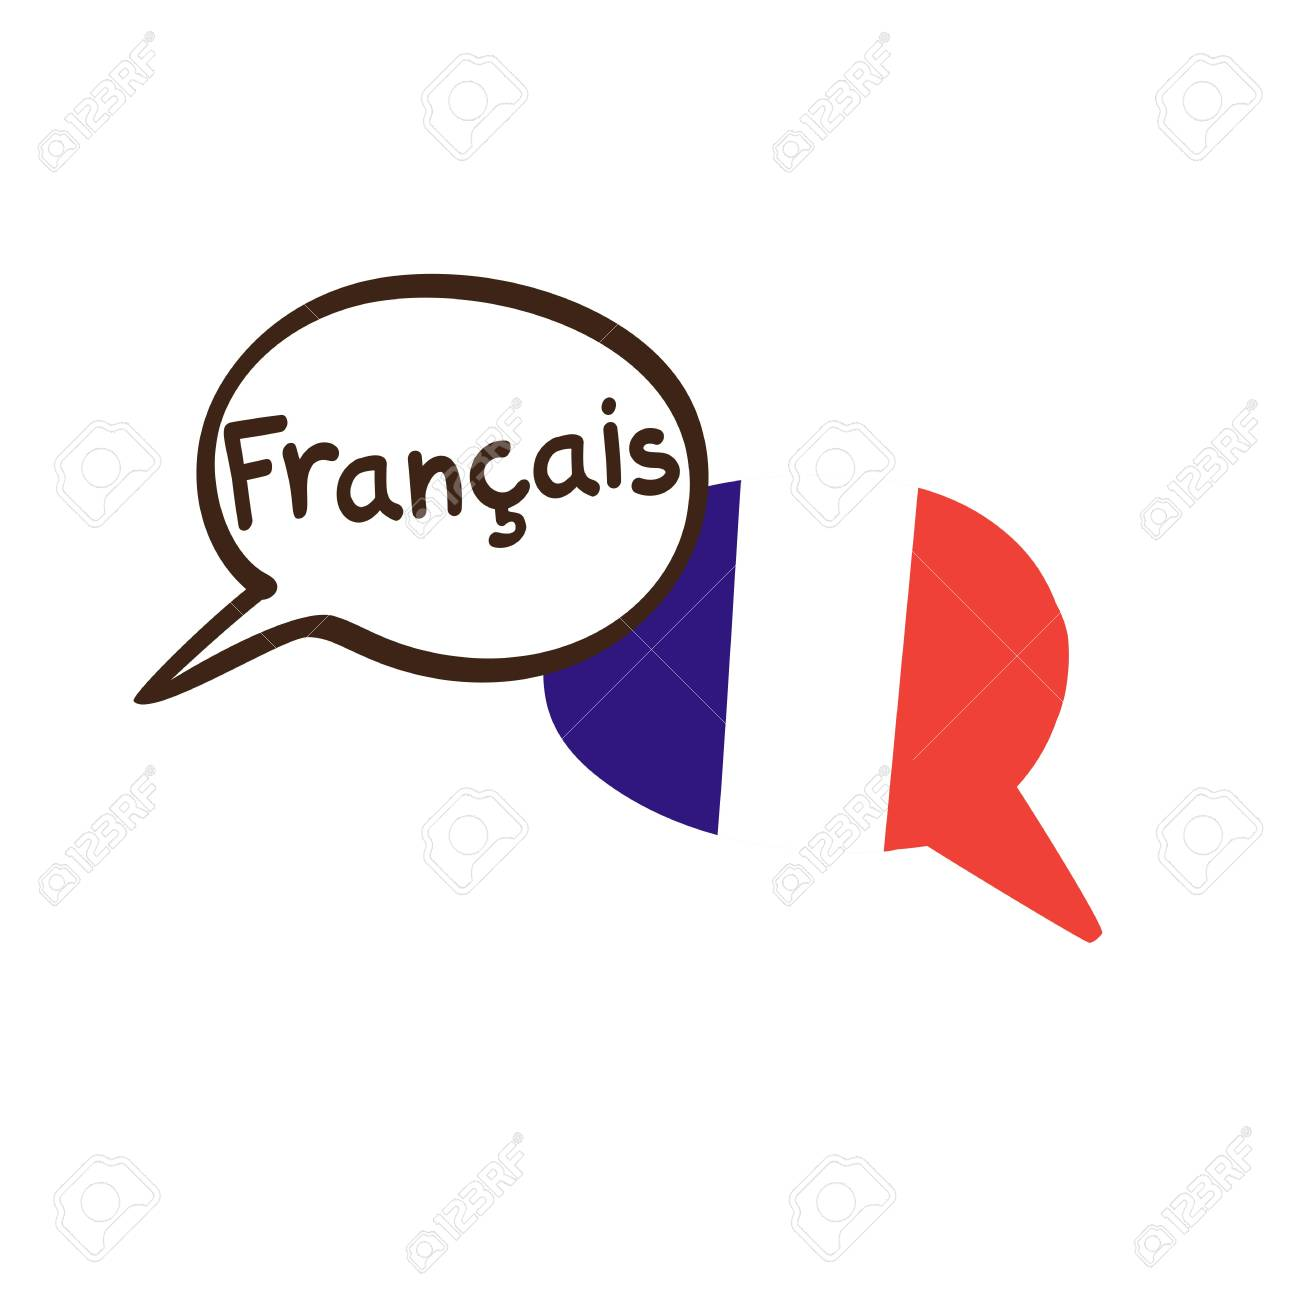 Vector illustration with two hand drawn doodle speech bubbles with a national flag of France and hand written name of the French language. Modern design for language. - 90952693